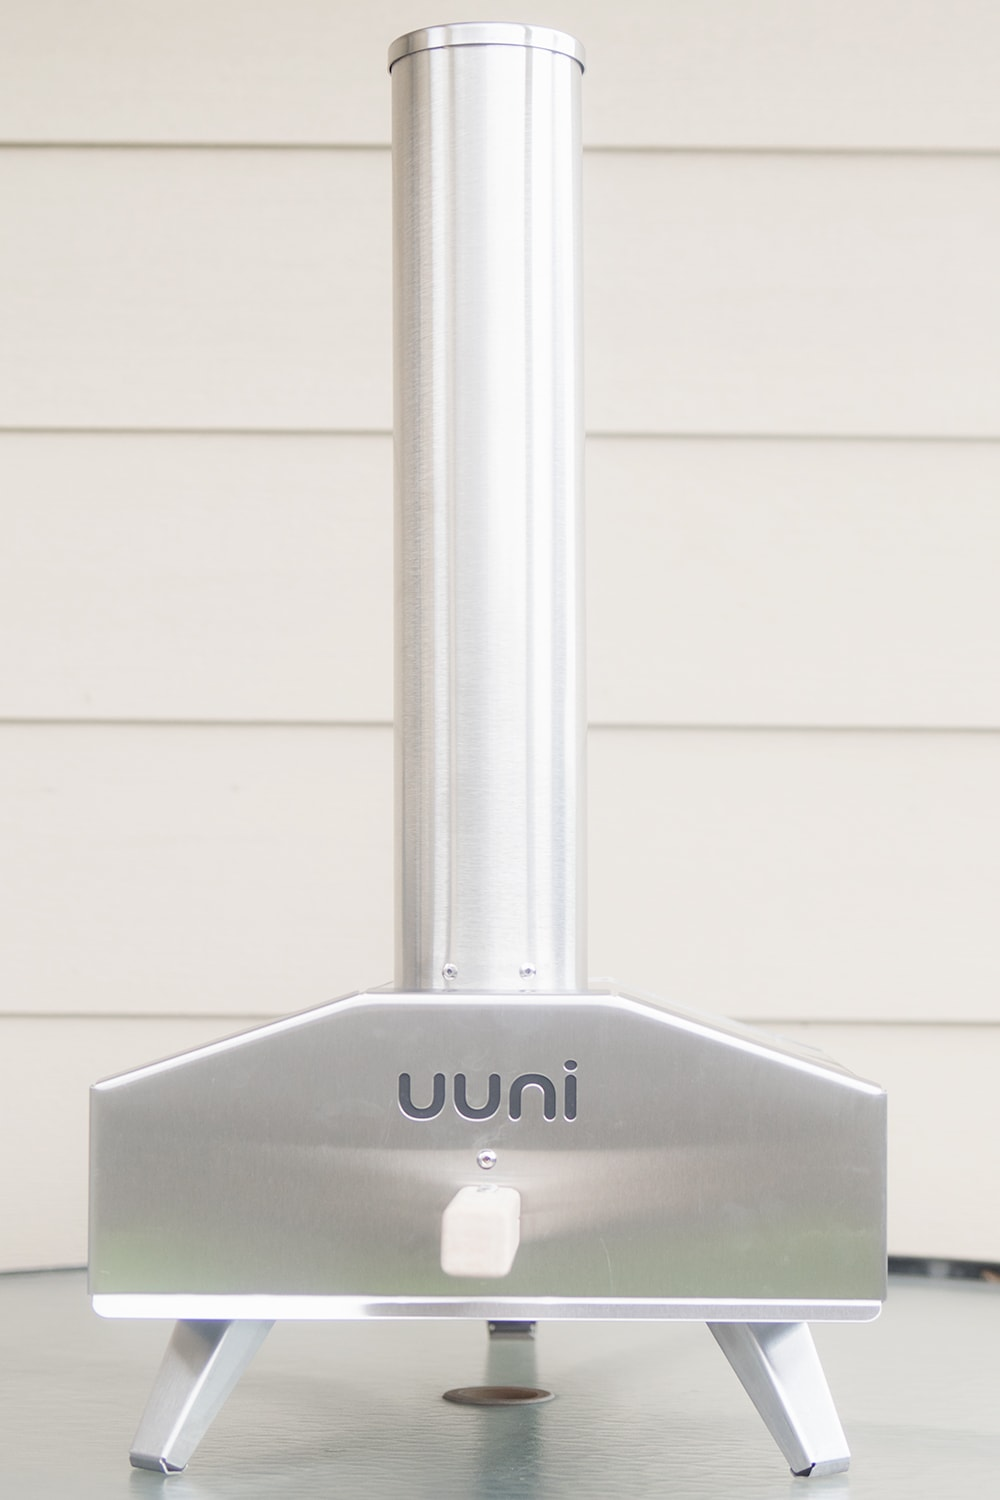 Uuni Wood Fired Pizza oven - a fun Father's Day gift idea - by lifestyle blogger Meg O. on the Go